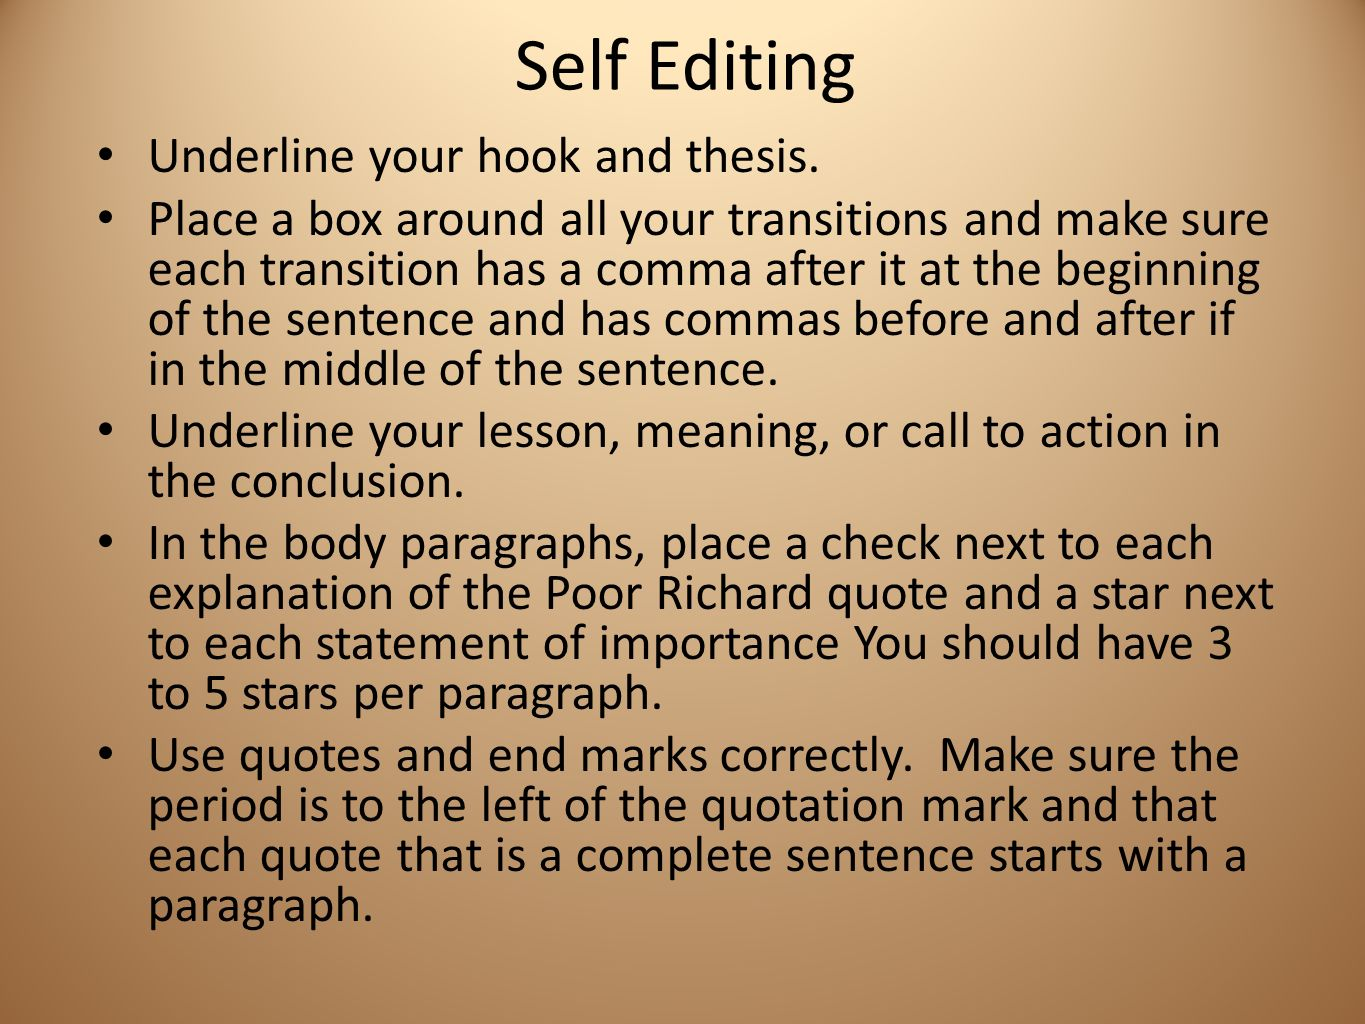 Editing dissertations quote